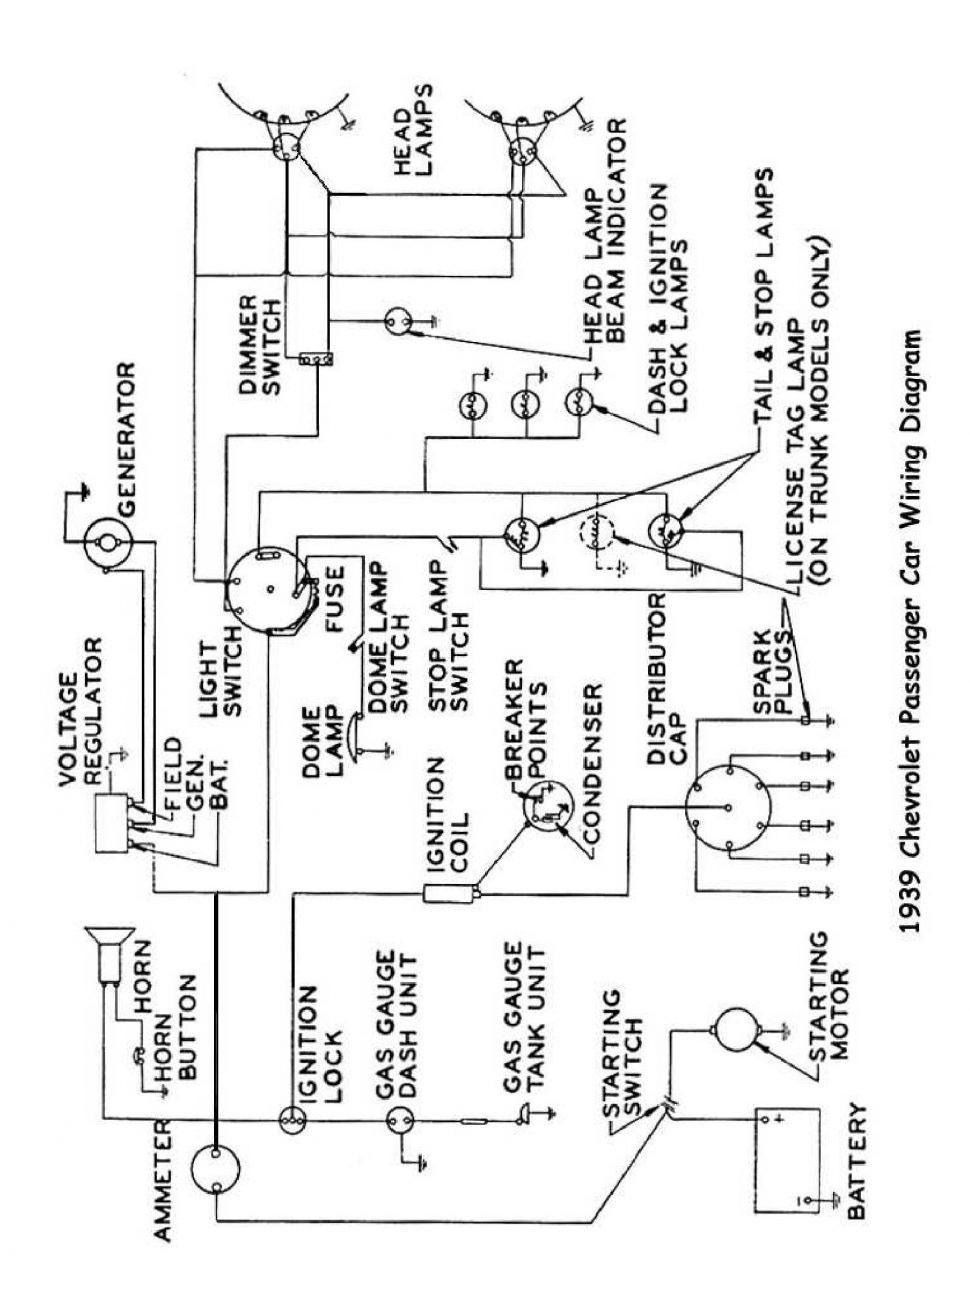 medium resolution of ultra remote car starter wiring diagram wiringdiagram org